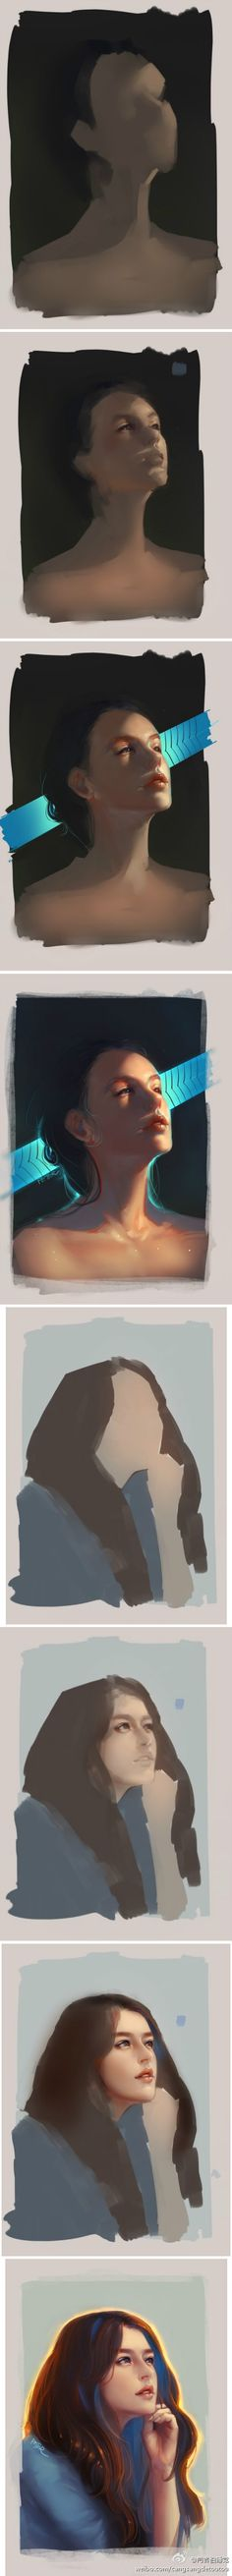 I love seeing how illustrations are made. Digital Painting Tutorials, Digital Art Tutorial, Art Tutorials, Painting Process, Process Art, Painting & Drawing, Girl Pose, Chef D Oeuvre, Art Studies